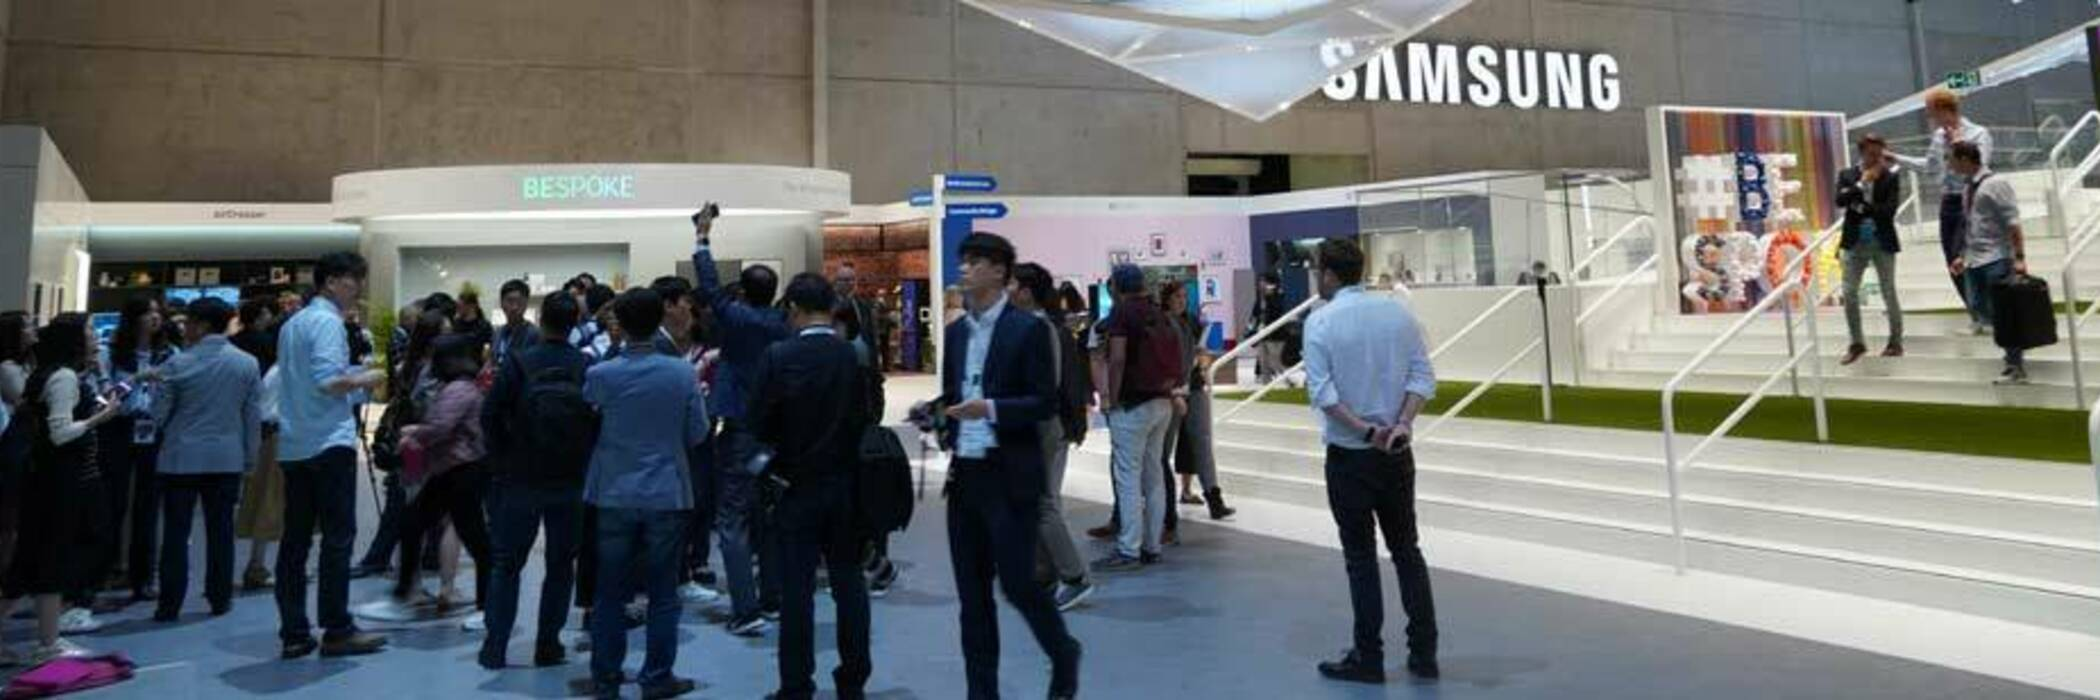 People attending Samsung's showcase at IFA Berlin 2019.